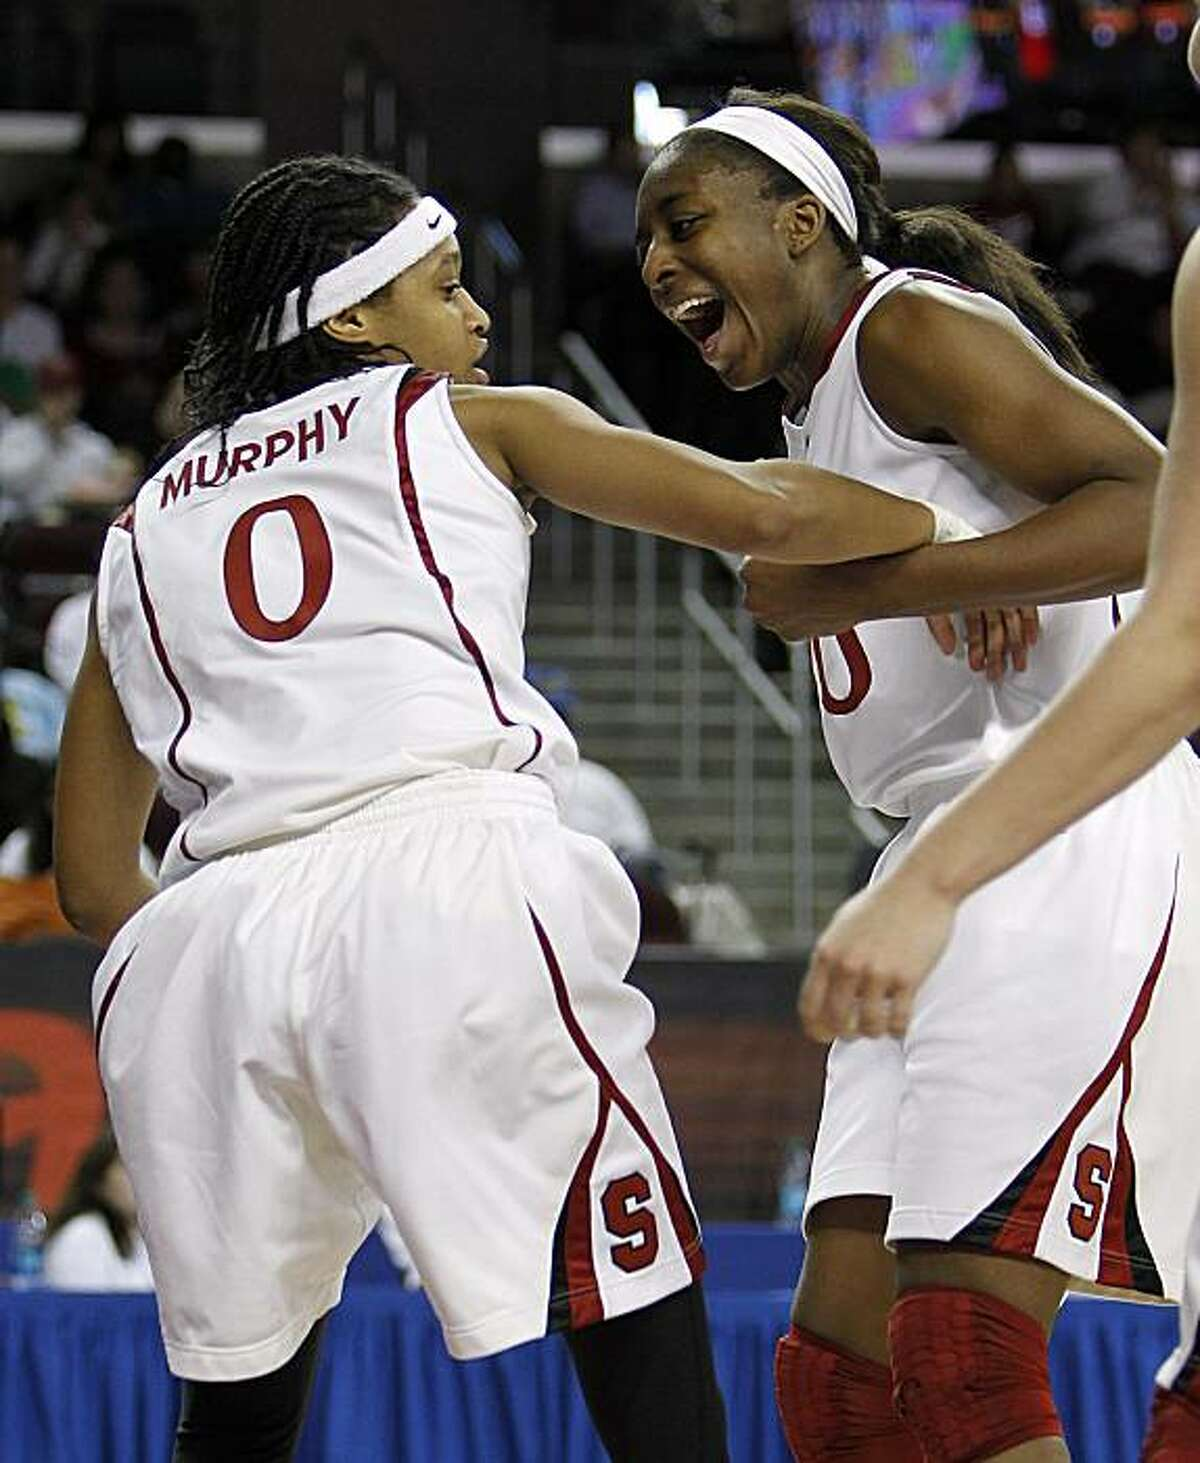 Stanford forward Nnemkadi Ogwumike, right, congratulates guard Melanie Murphy (0) on a play in the second half against UCLA in an NCAA college basketball game in the finals of the women's Pac-10 tournament Sunday, March 14, 2010, in Los Angeles. Stanfordwon 70-46.